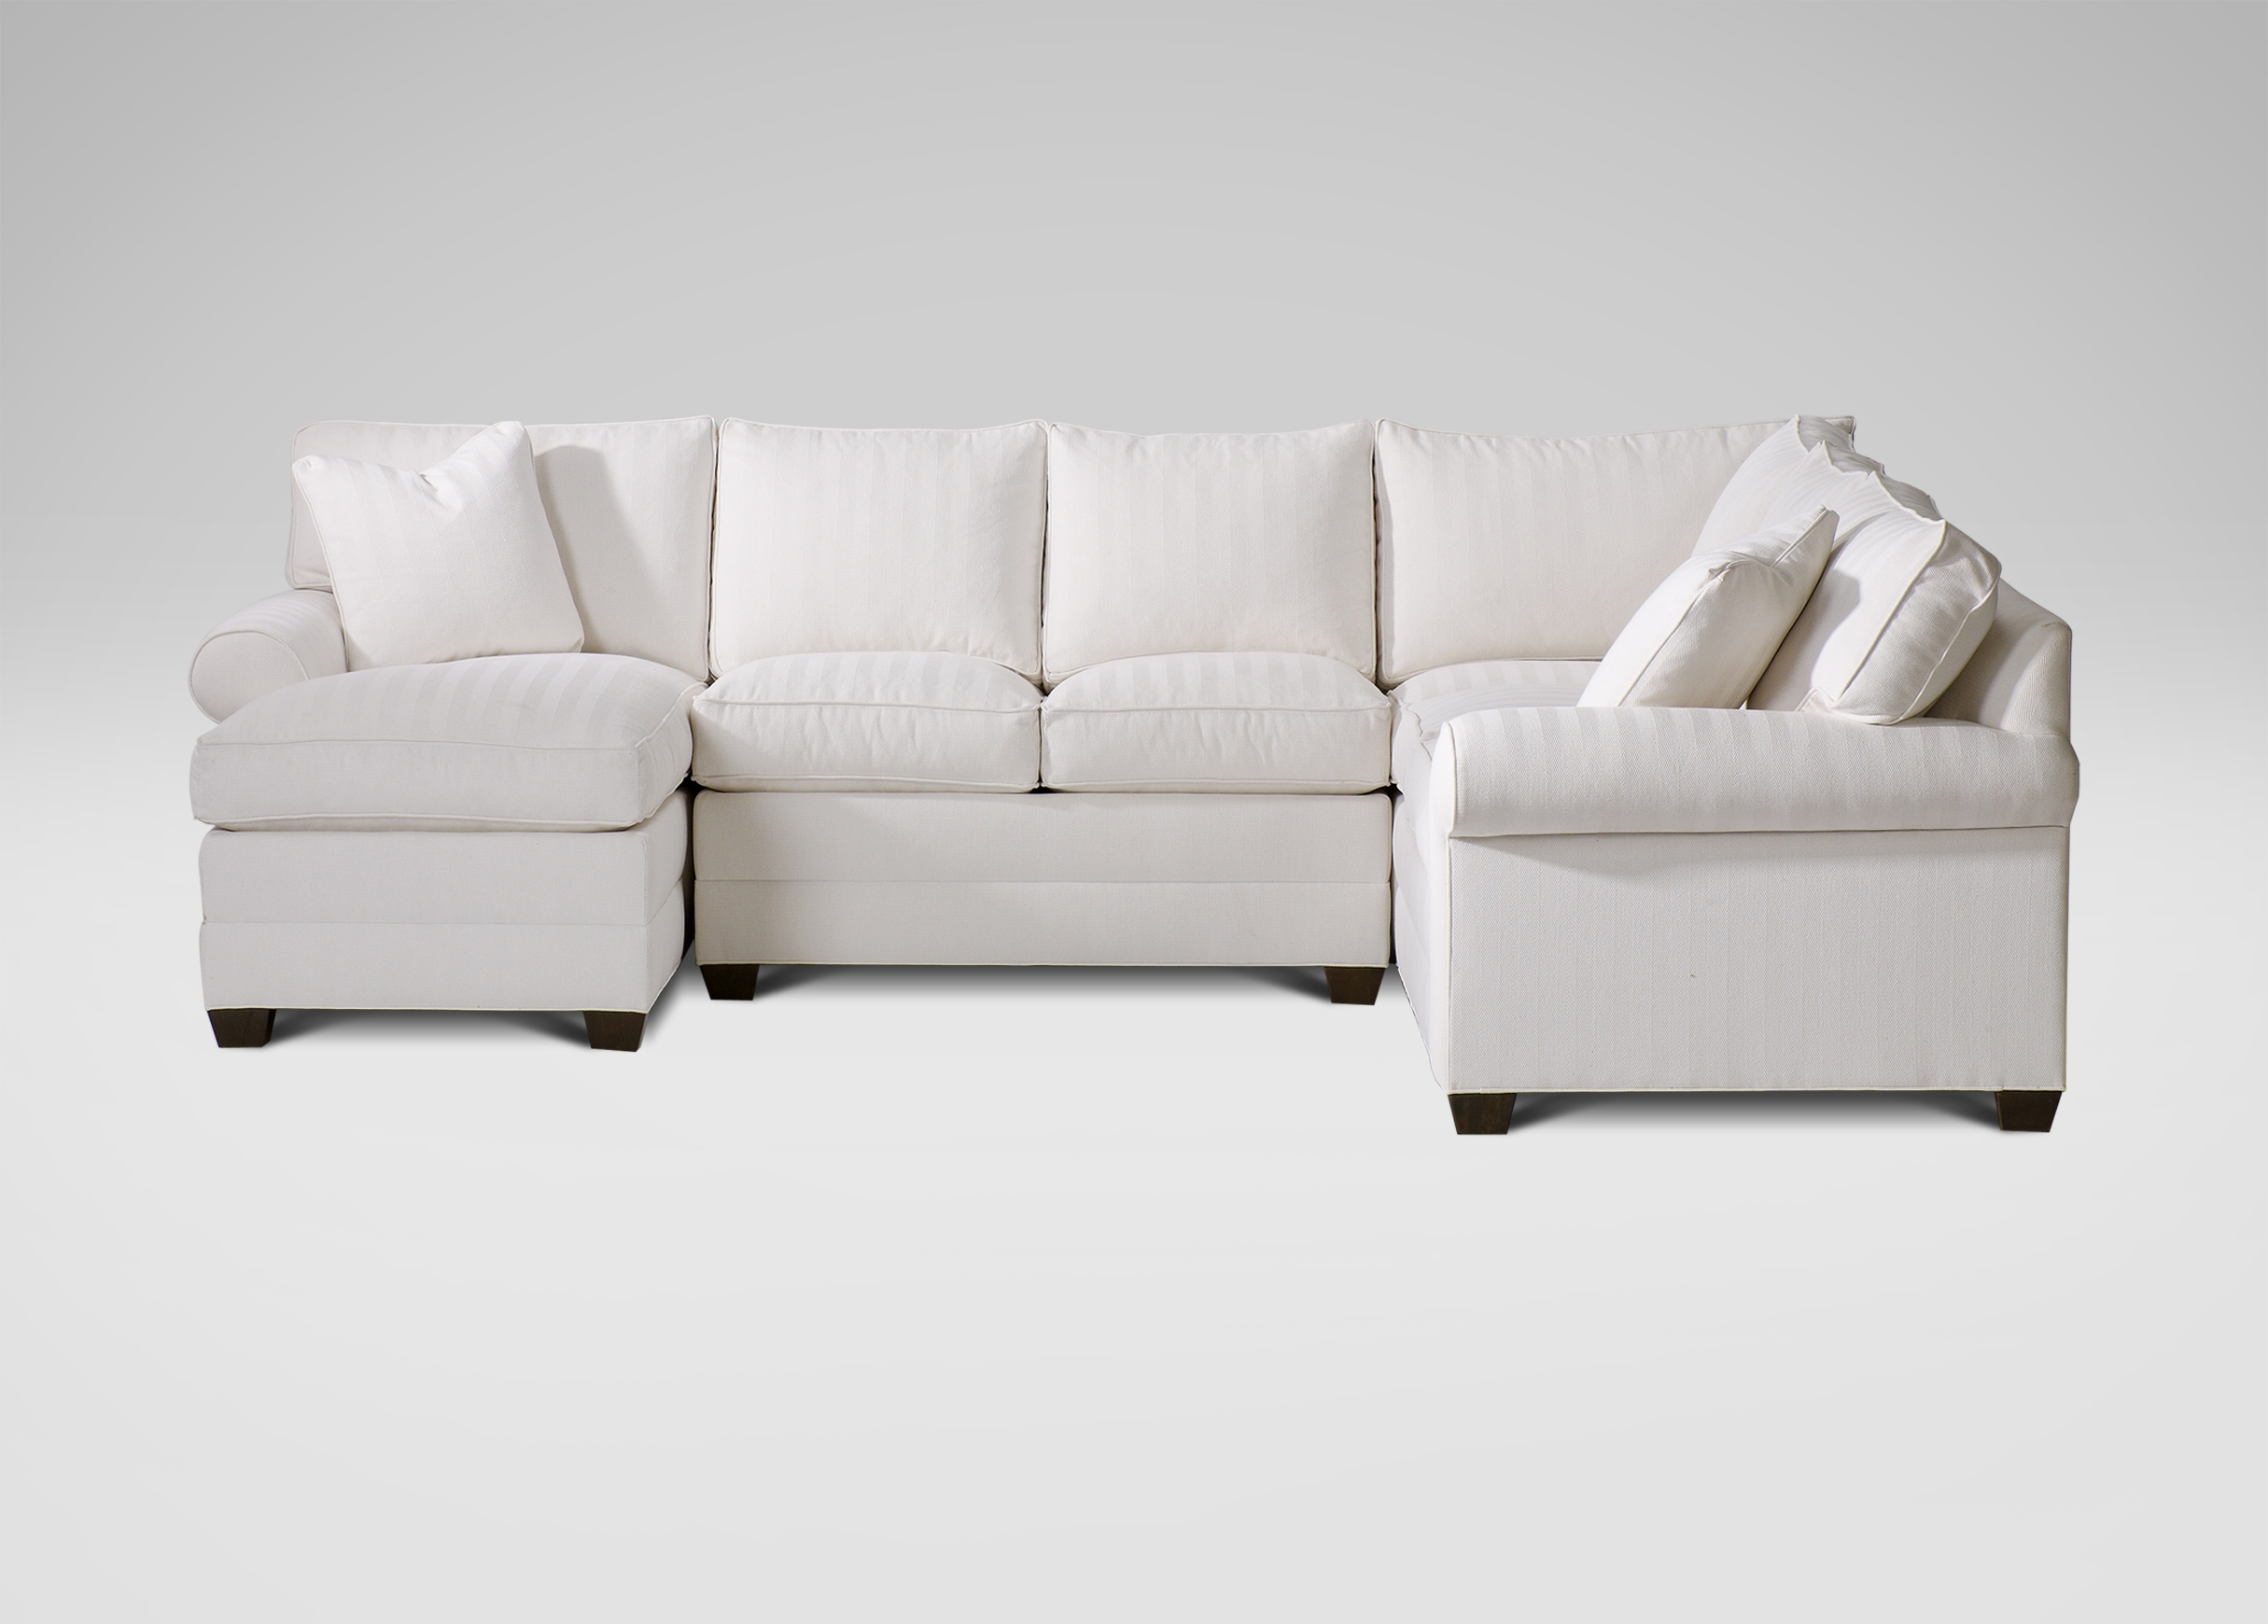 Furniture: Ethan Allen Sectional Sofas Bennett Sofa Reviews regarding Sectional Sofas At Ethan Allen (Image 6 of 10)